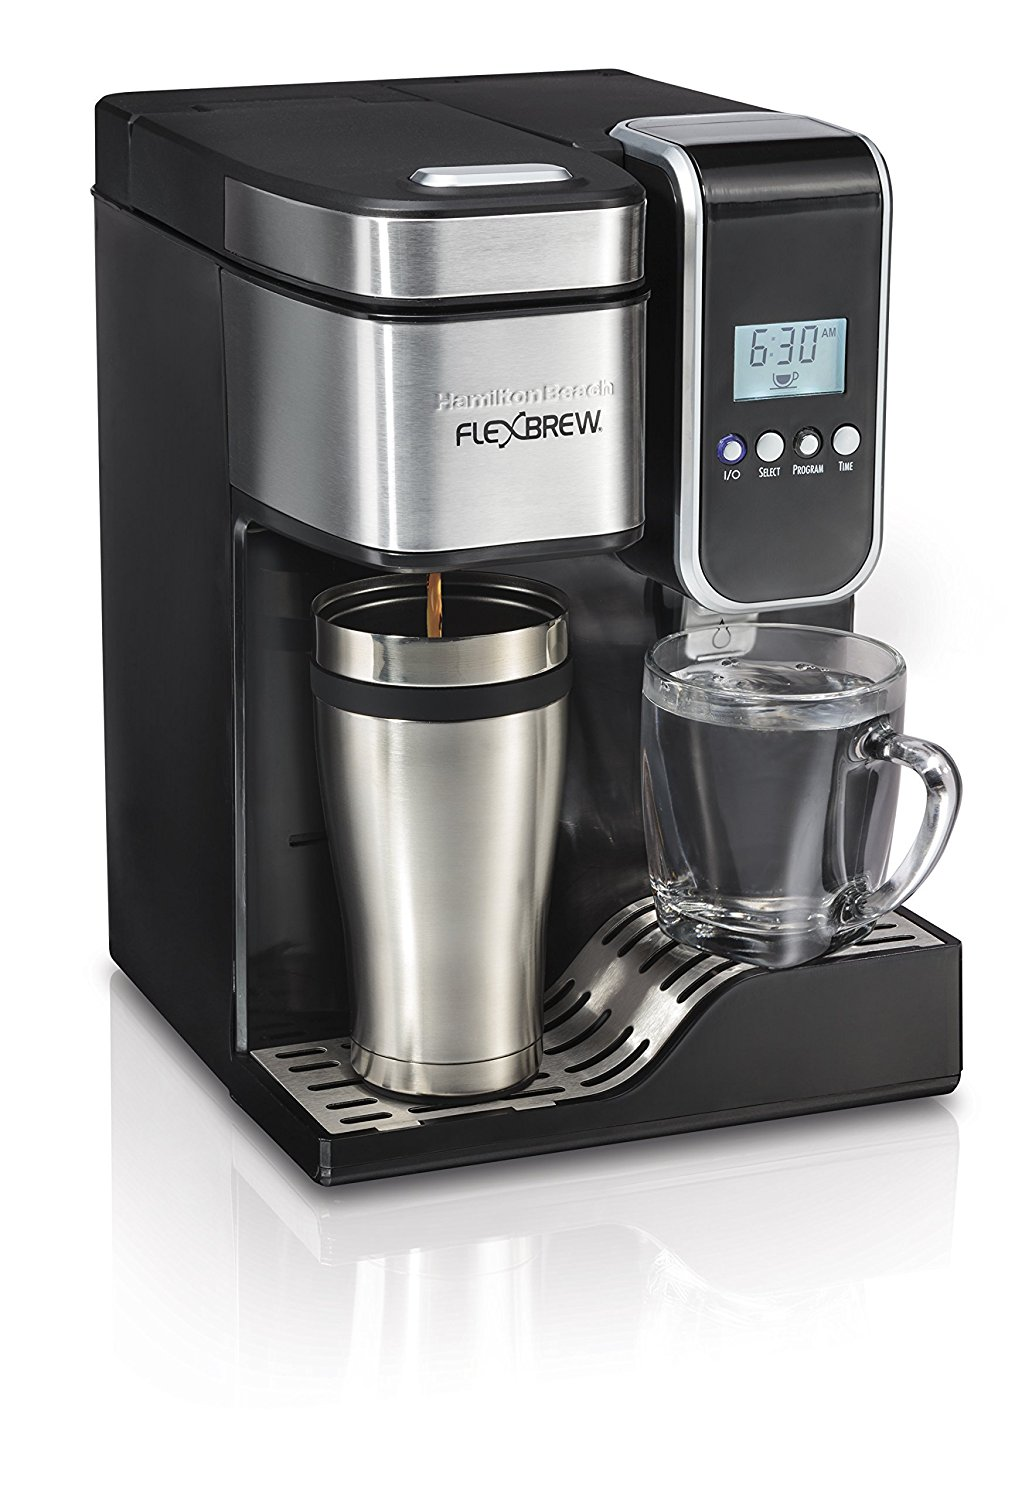 Top 10 Best Coffee Makers For Home and Office – BestReviewy.com